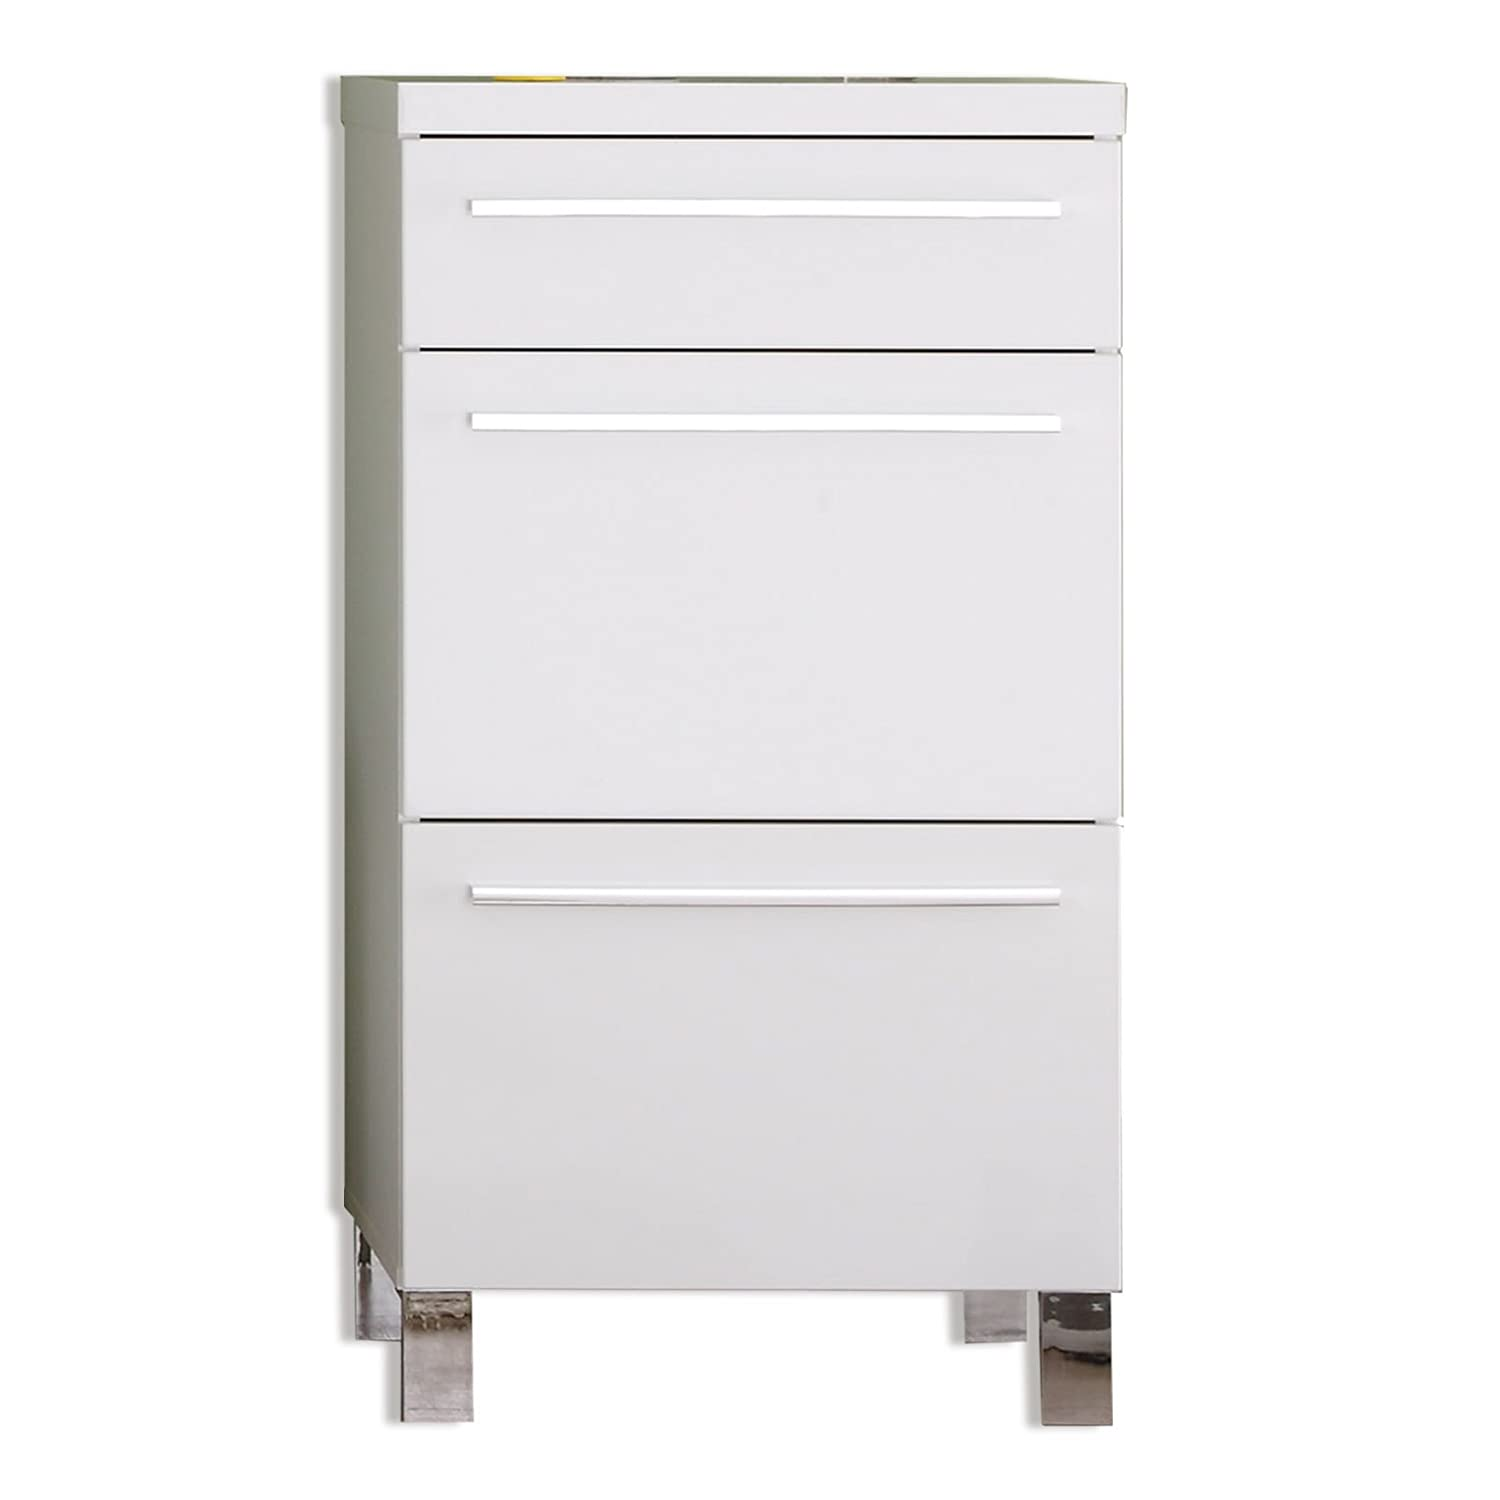 Furnline Hallway Derby High Gloss Wardrobe Cabinet, White 1412-560-01